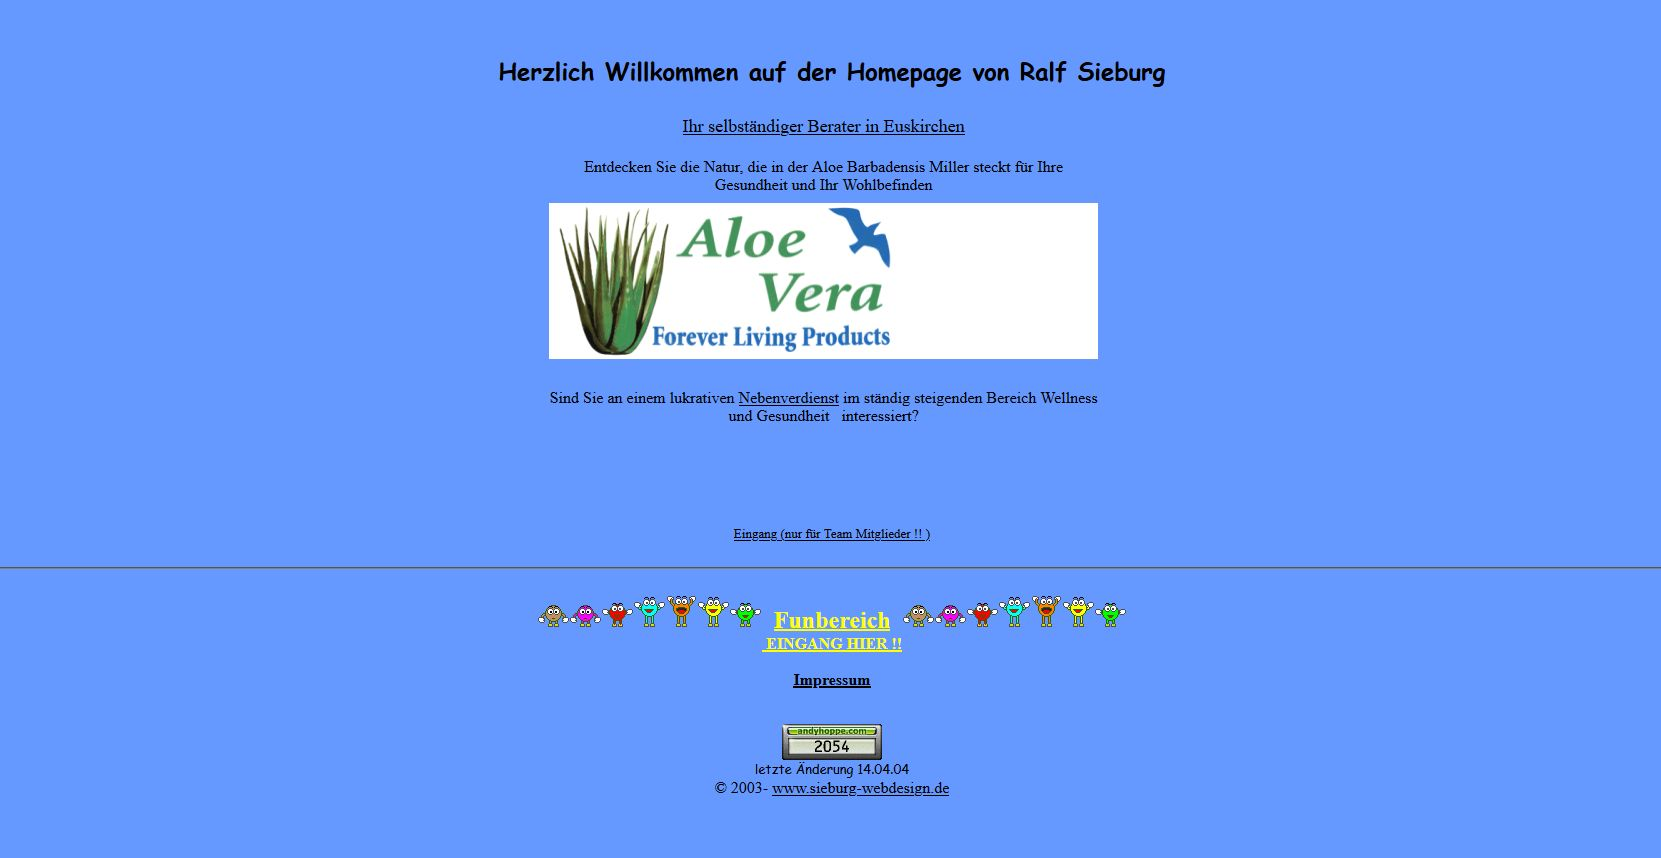 Das Internet vergisst nie – Wayback Machine